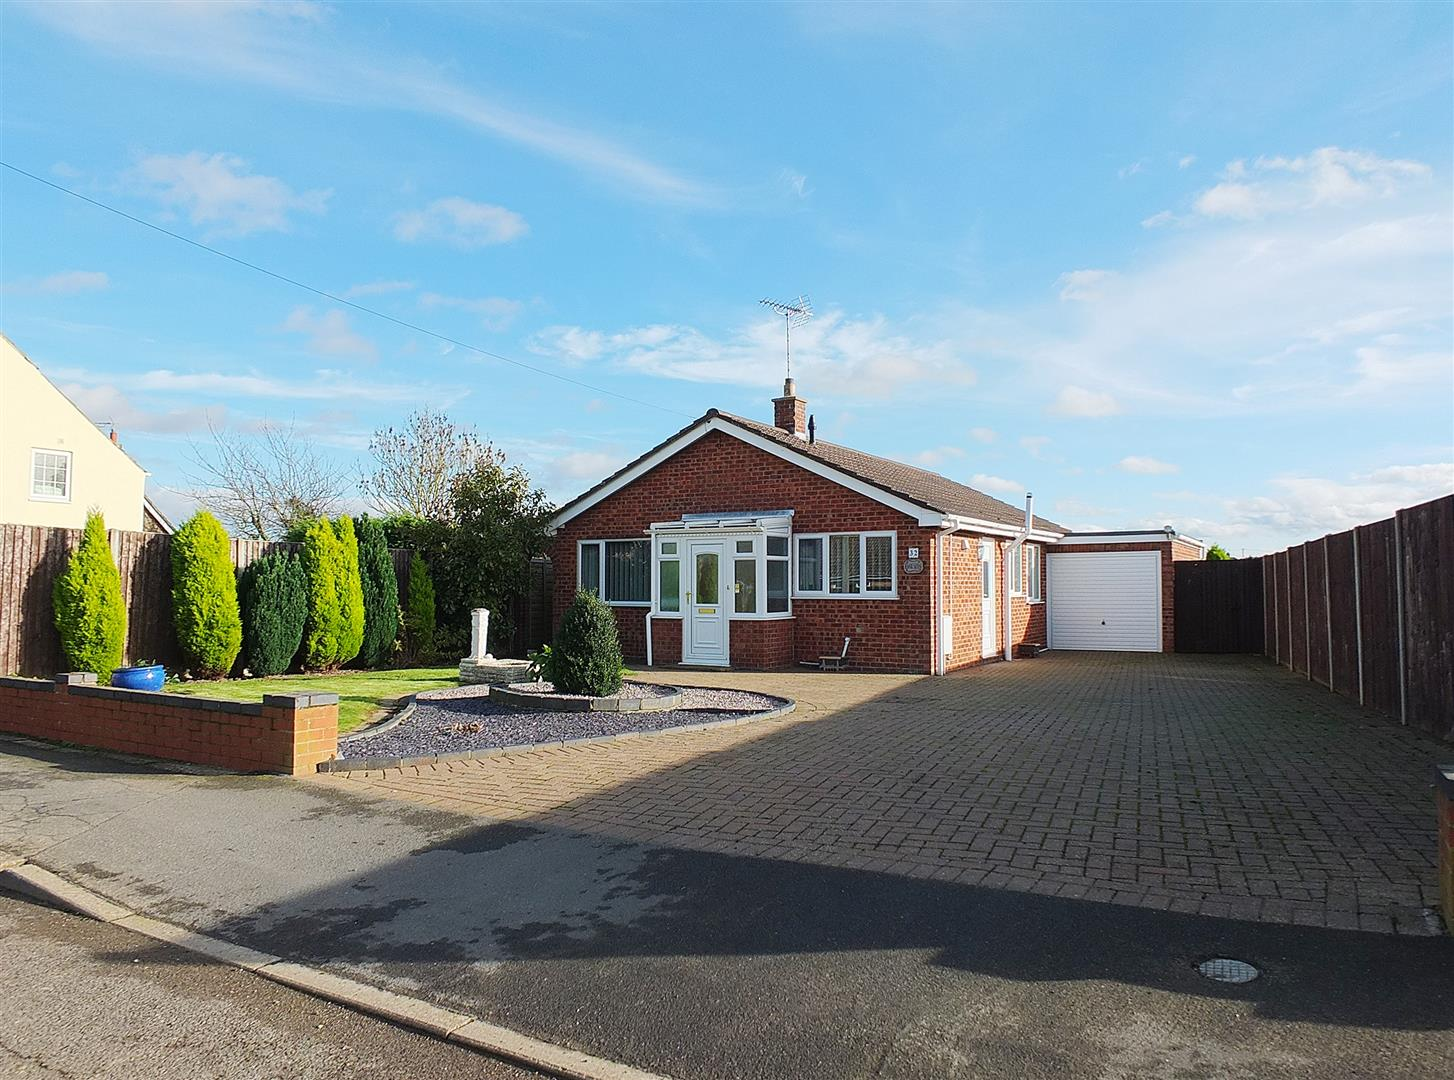 3 bed detached bungalow for sale in Lutton Spalding, PE12 9HP, PE12